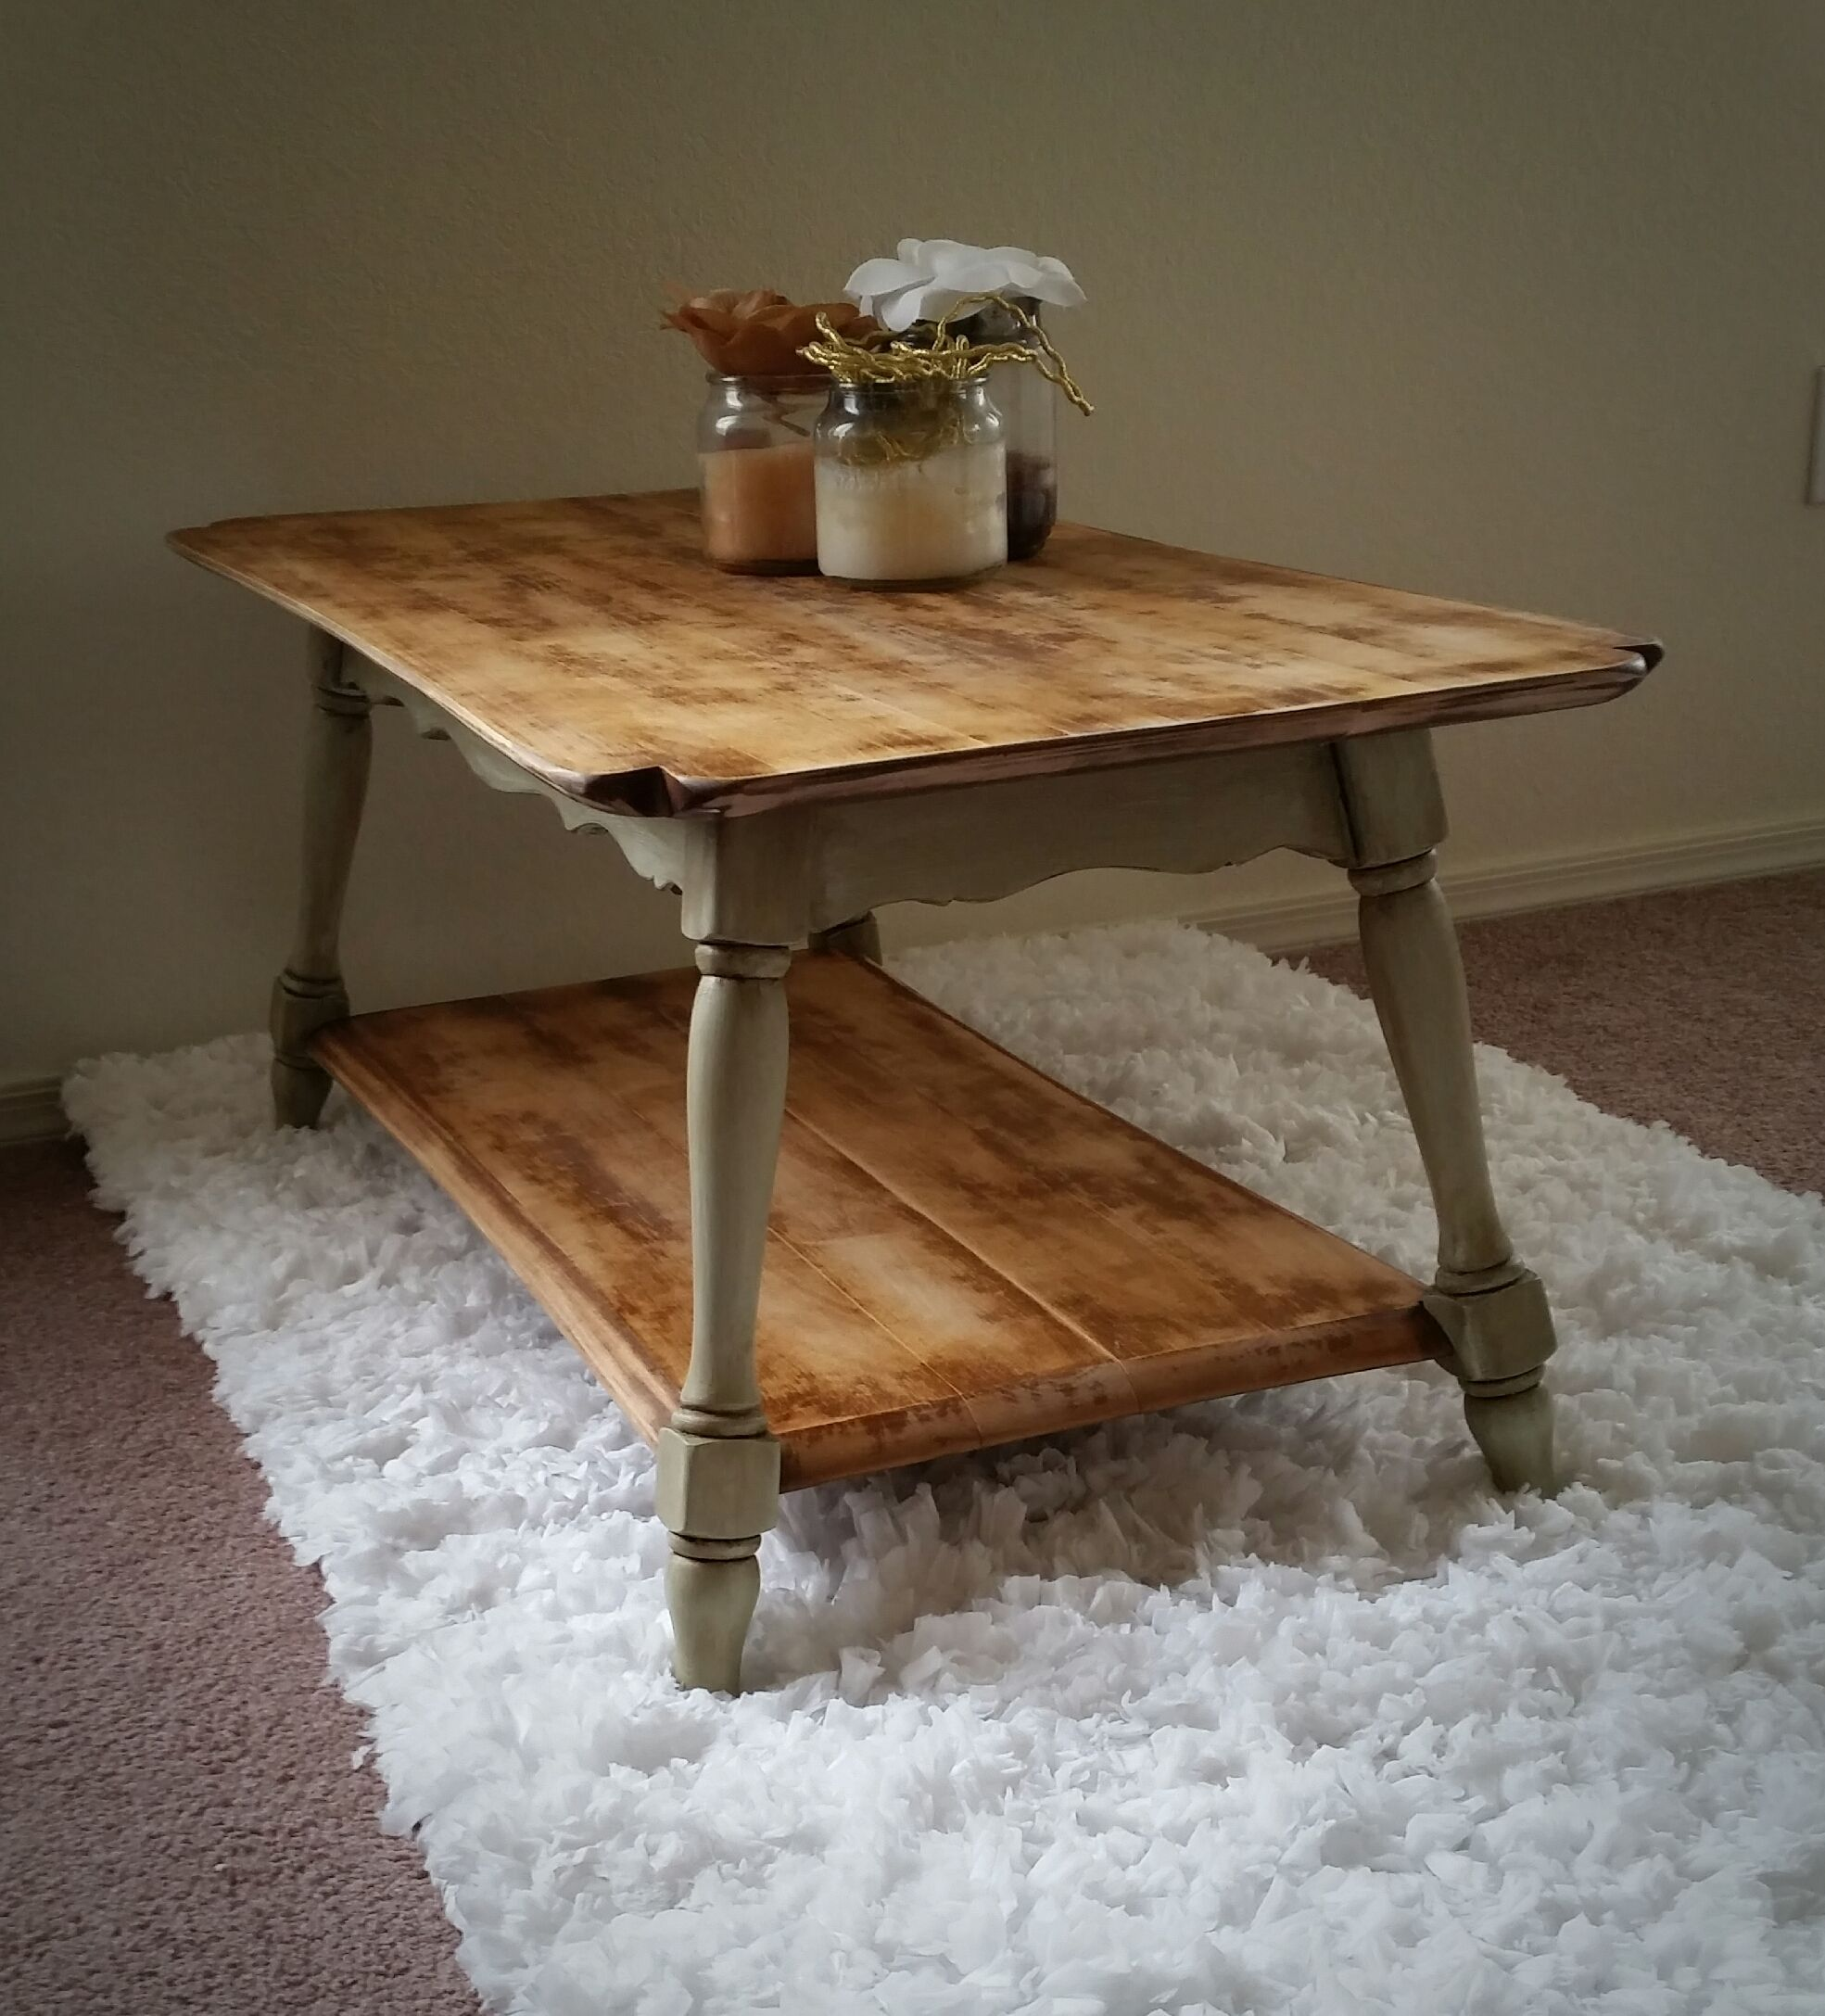 Antique Green Rustic Coffee Table Shabby Chic Vintage Distressed